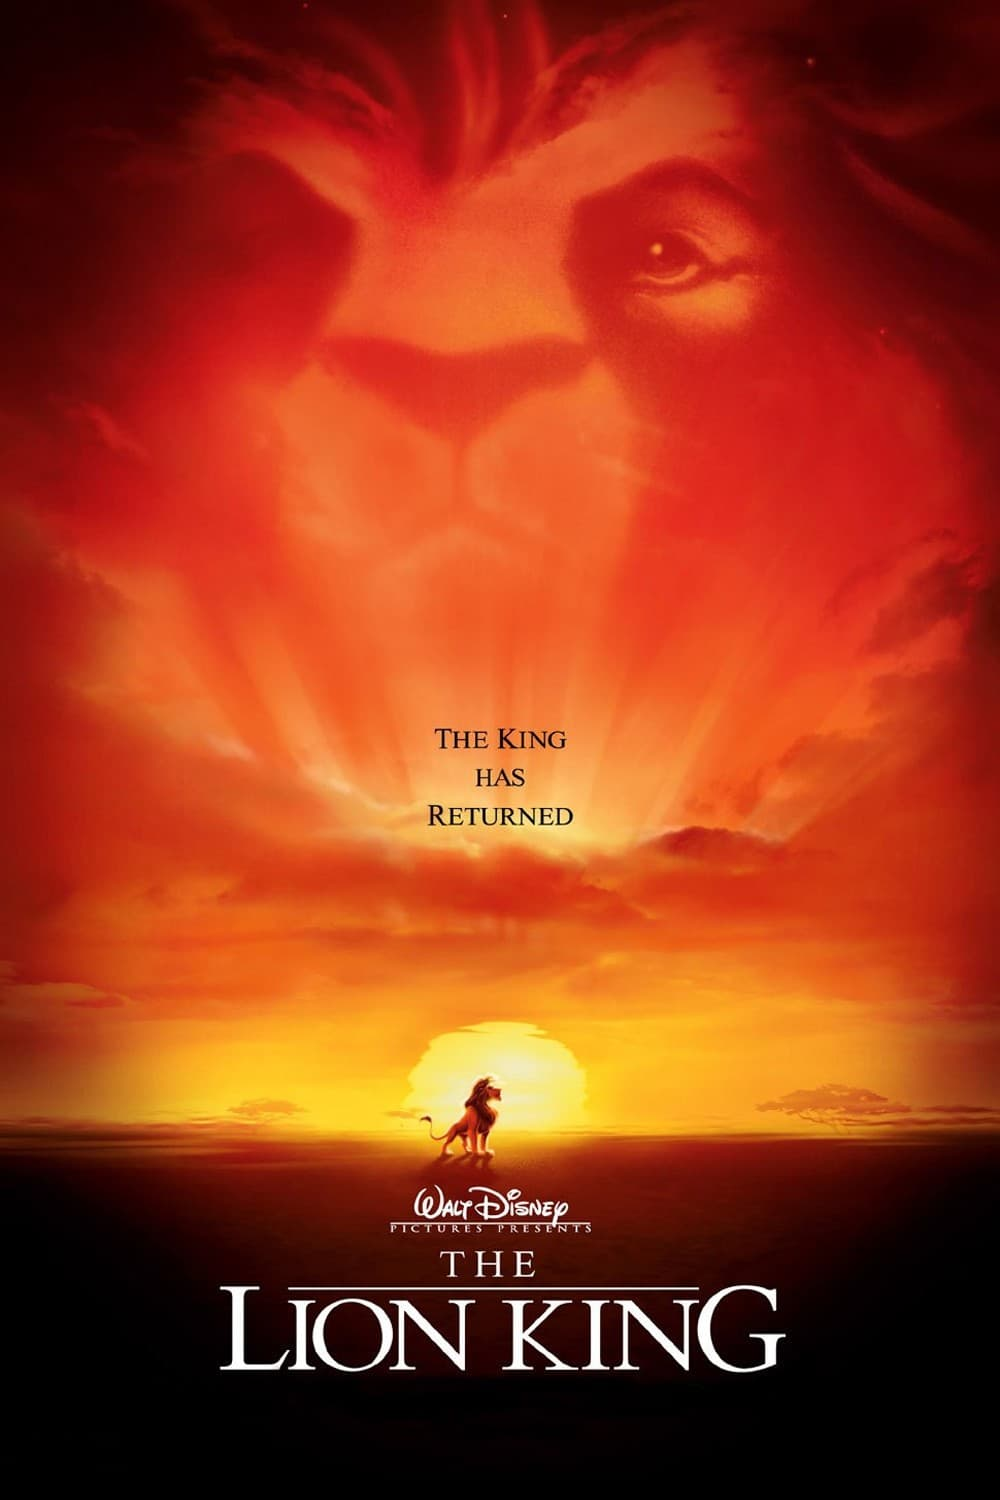 The Lion King Poster 1 1994 High Quality HD Printable Wallpapers Mufasa Soul And Simba